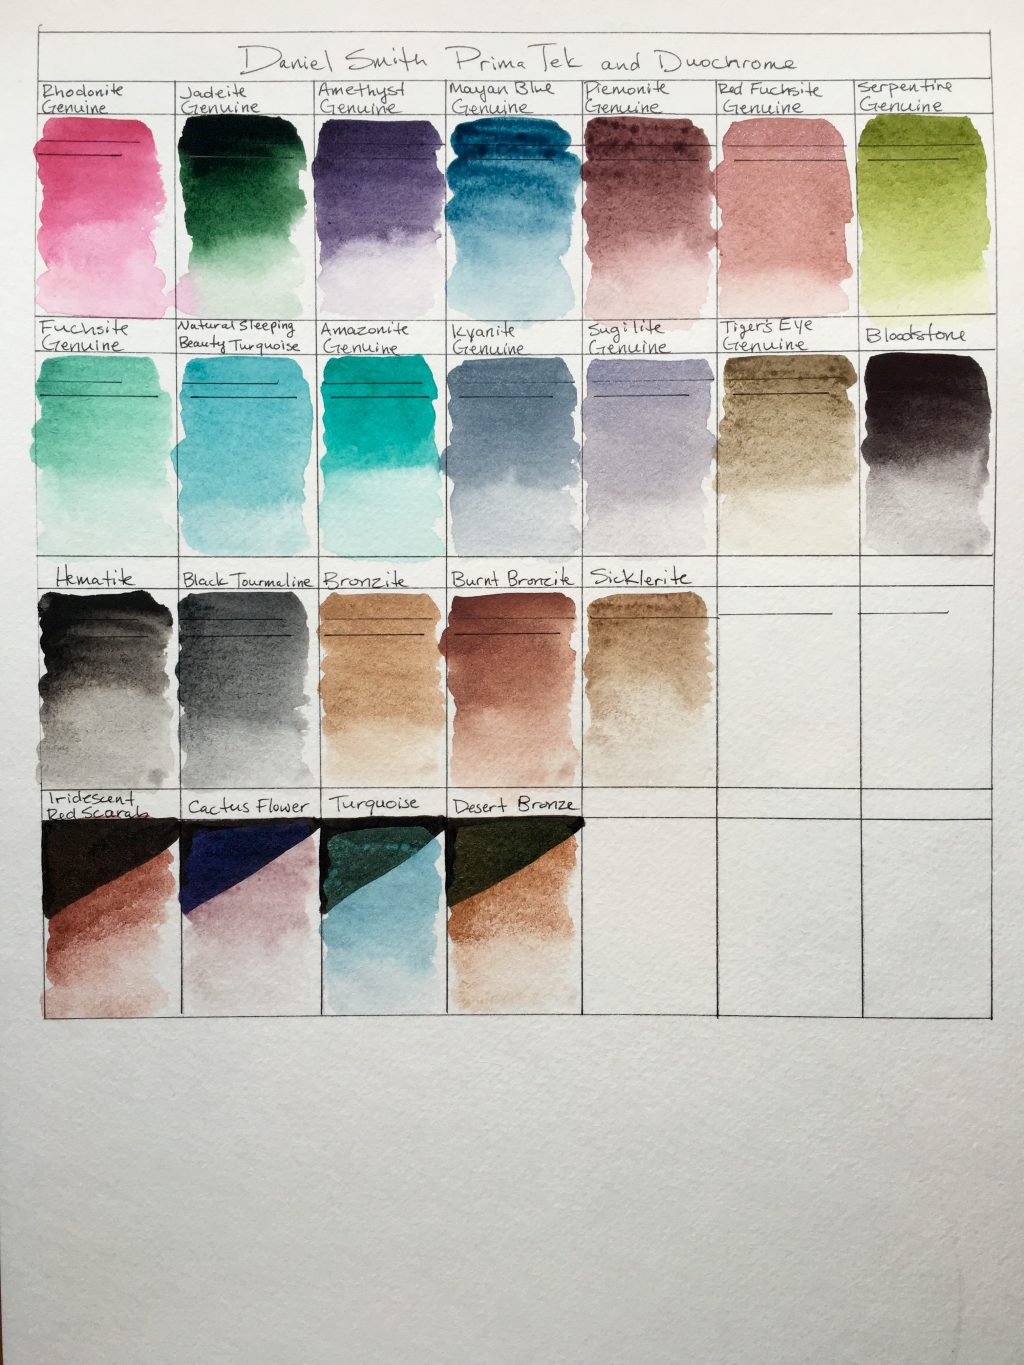 Daniel Smith PrimaTek and Luminescent watercolors swatches on Strathmore 400 series watercolor paper